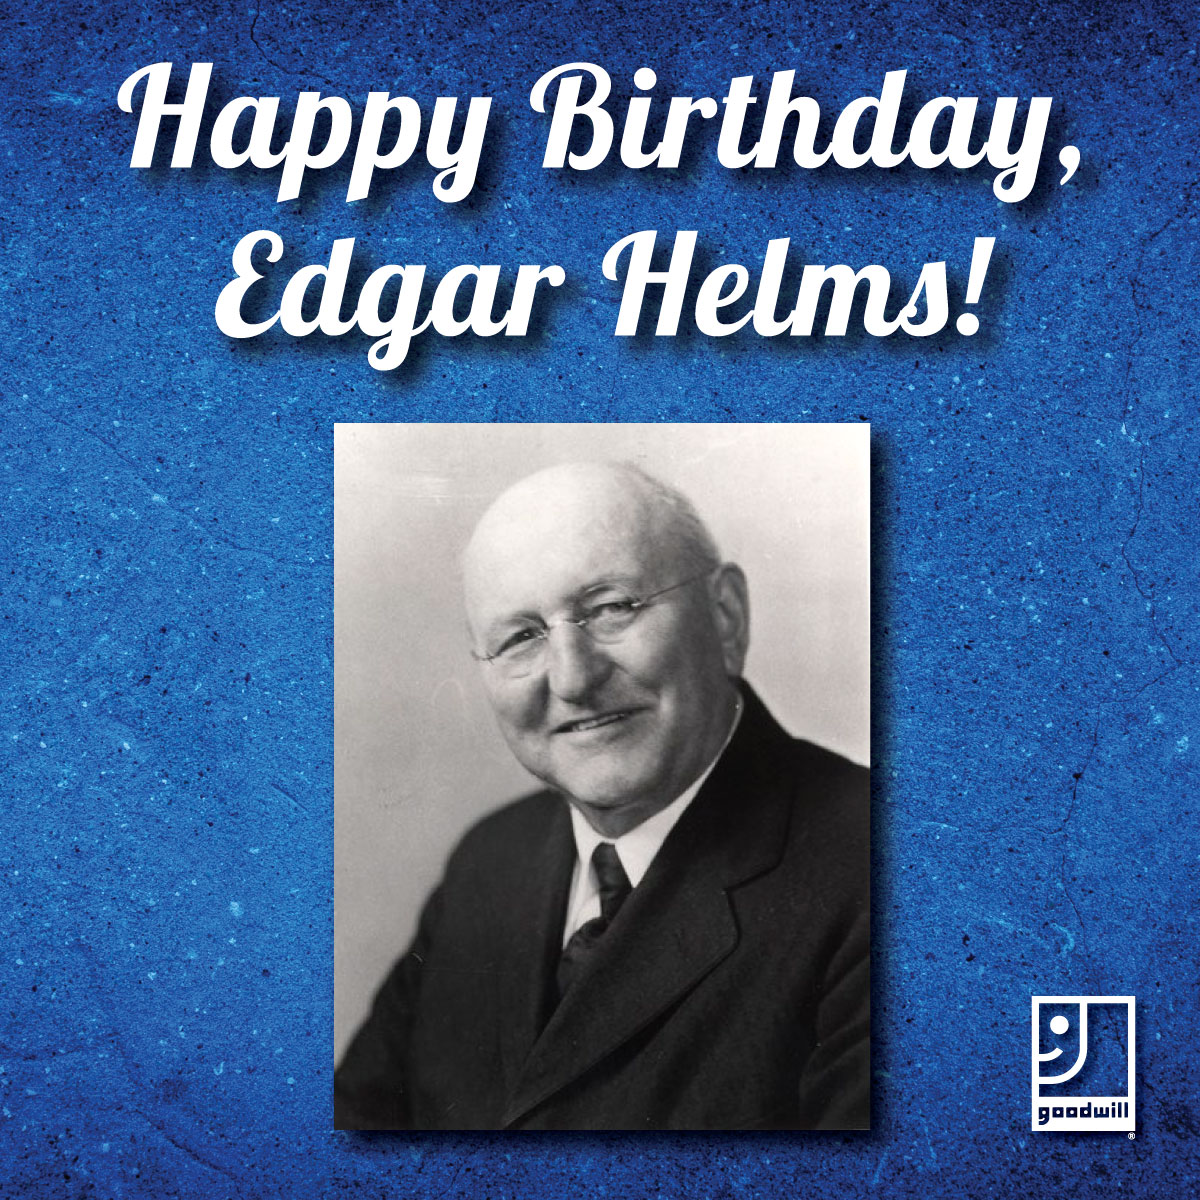 Happy Birthday, Edgar Helms!